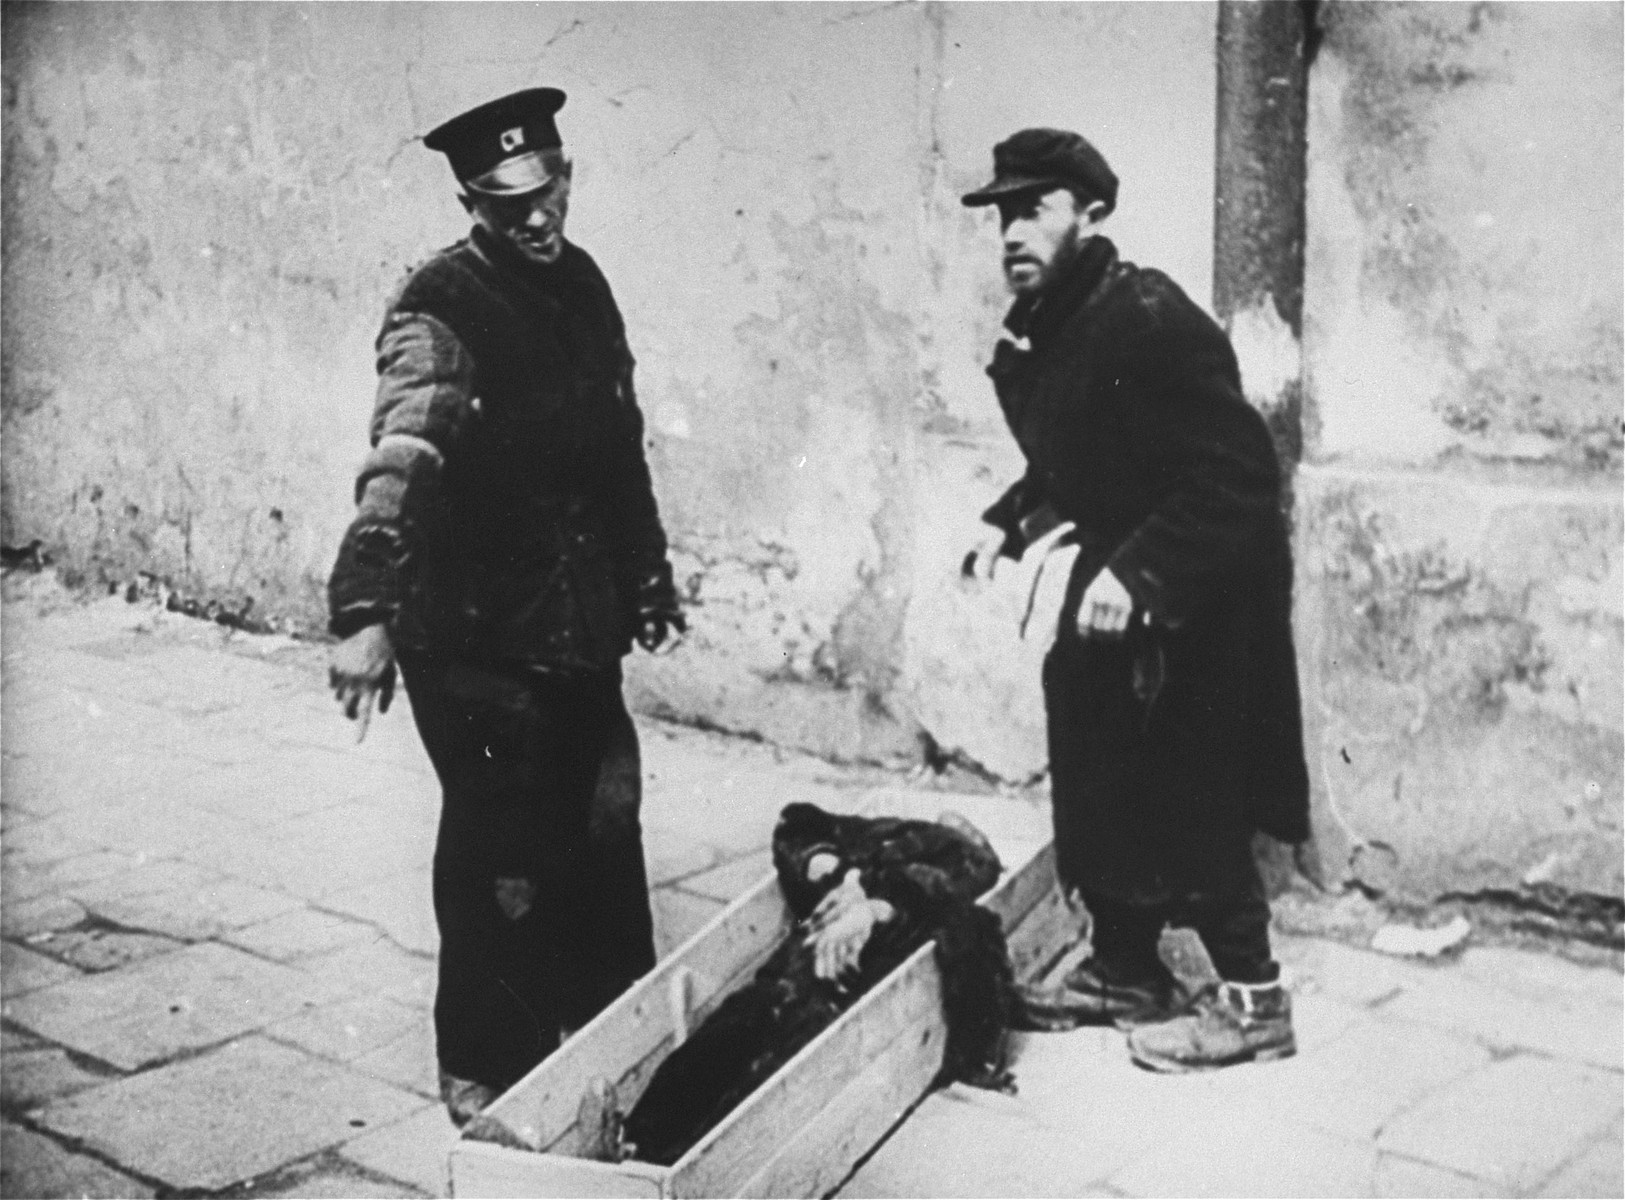 A workman from the Pinkiert funeral home has a man on the street help him pick up a body for burial in the Warsaw ghetto cemetery.